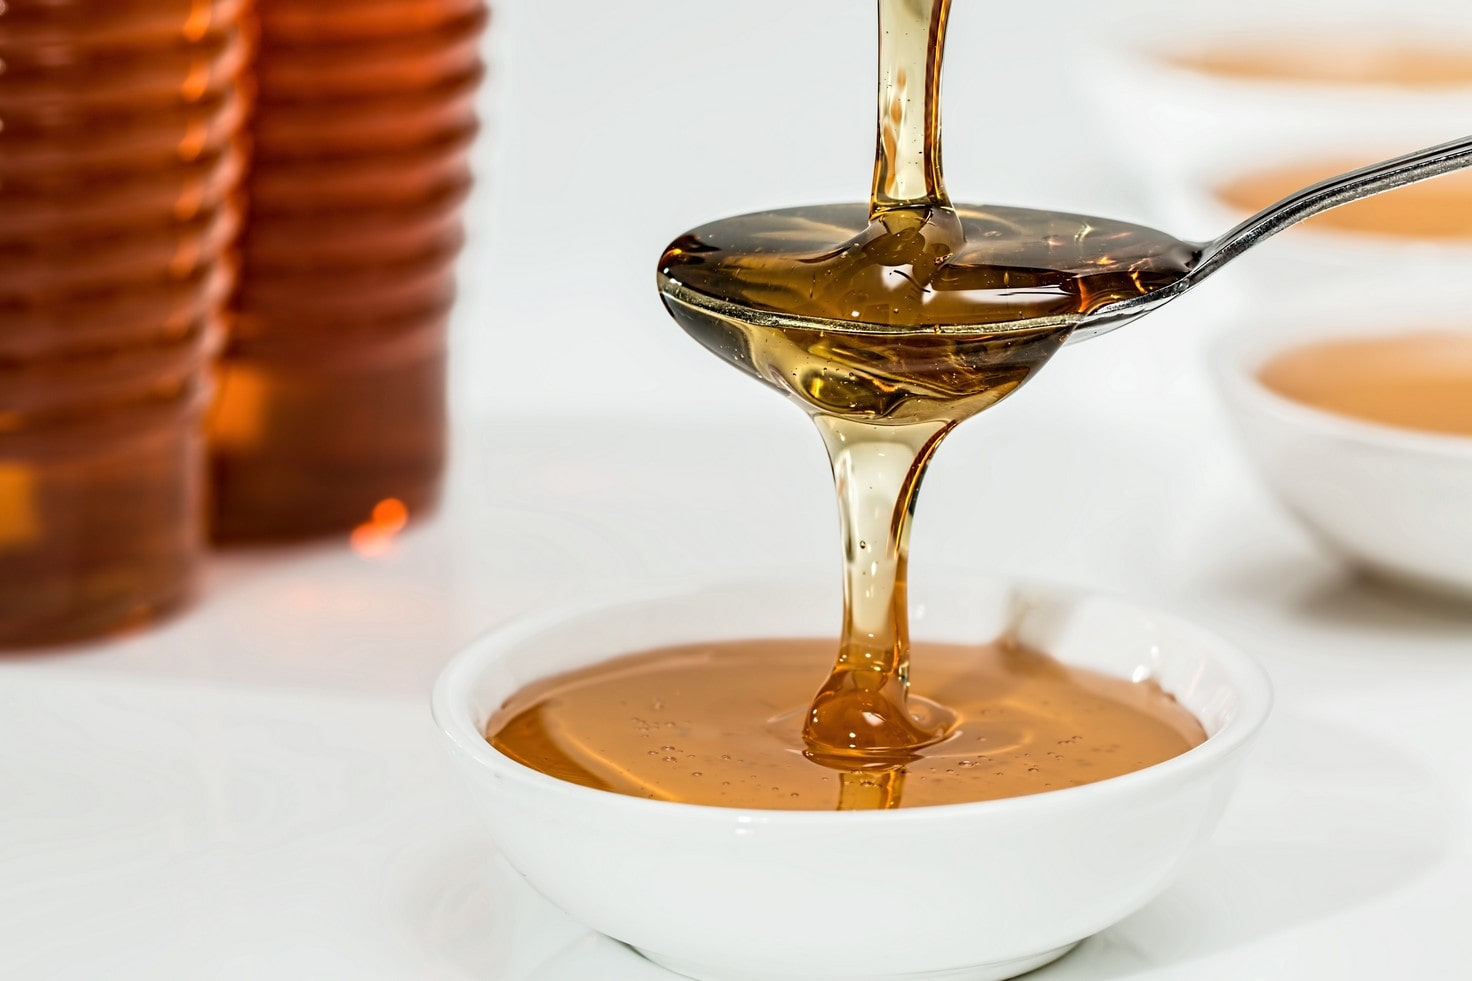 raw honey being poured onto a spoon and overflowing into a white bowl below.